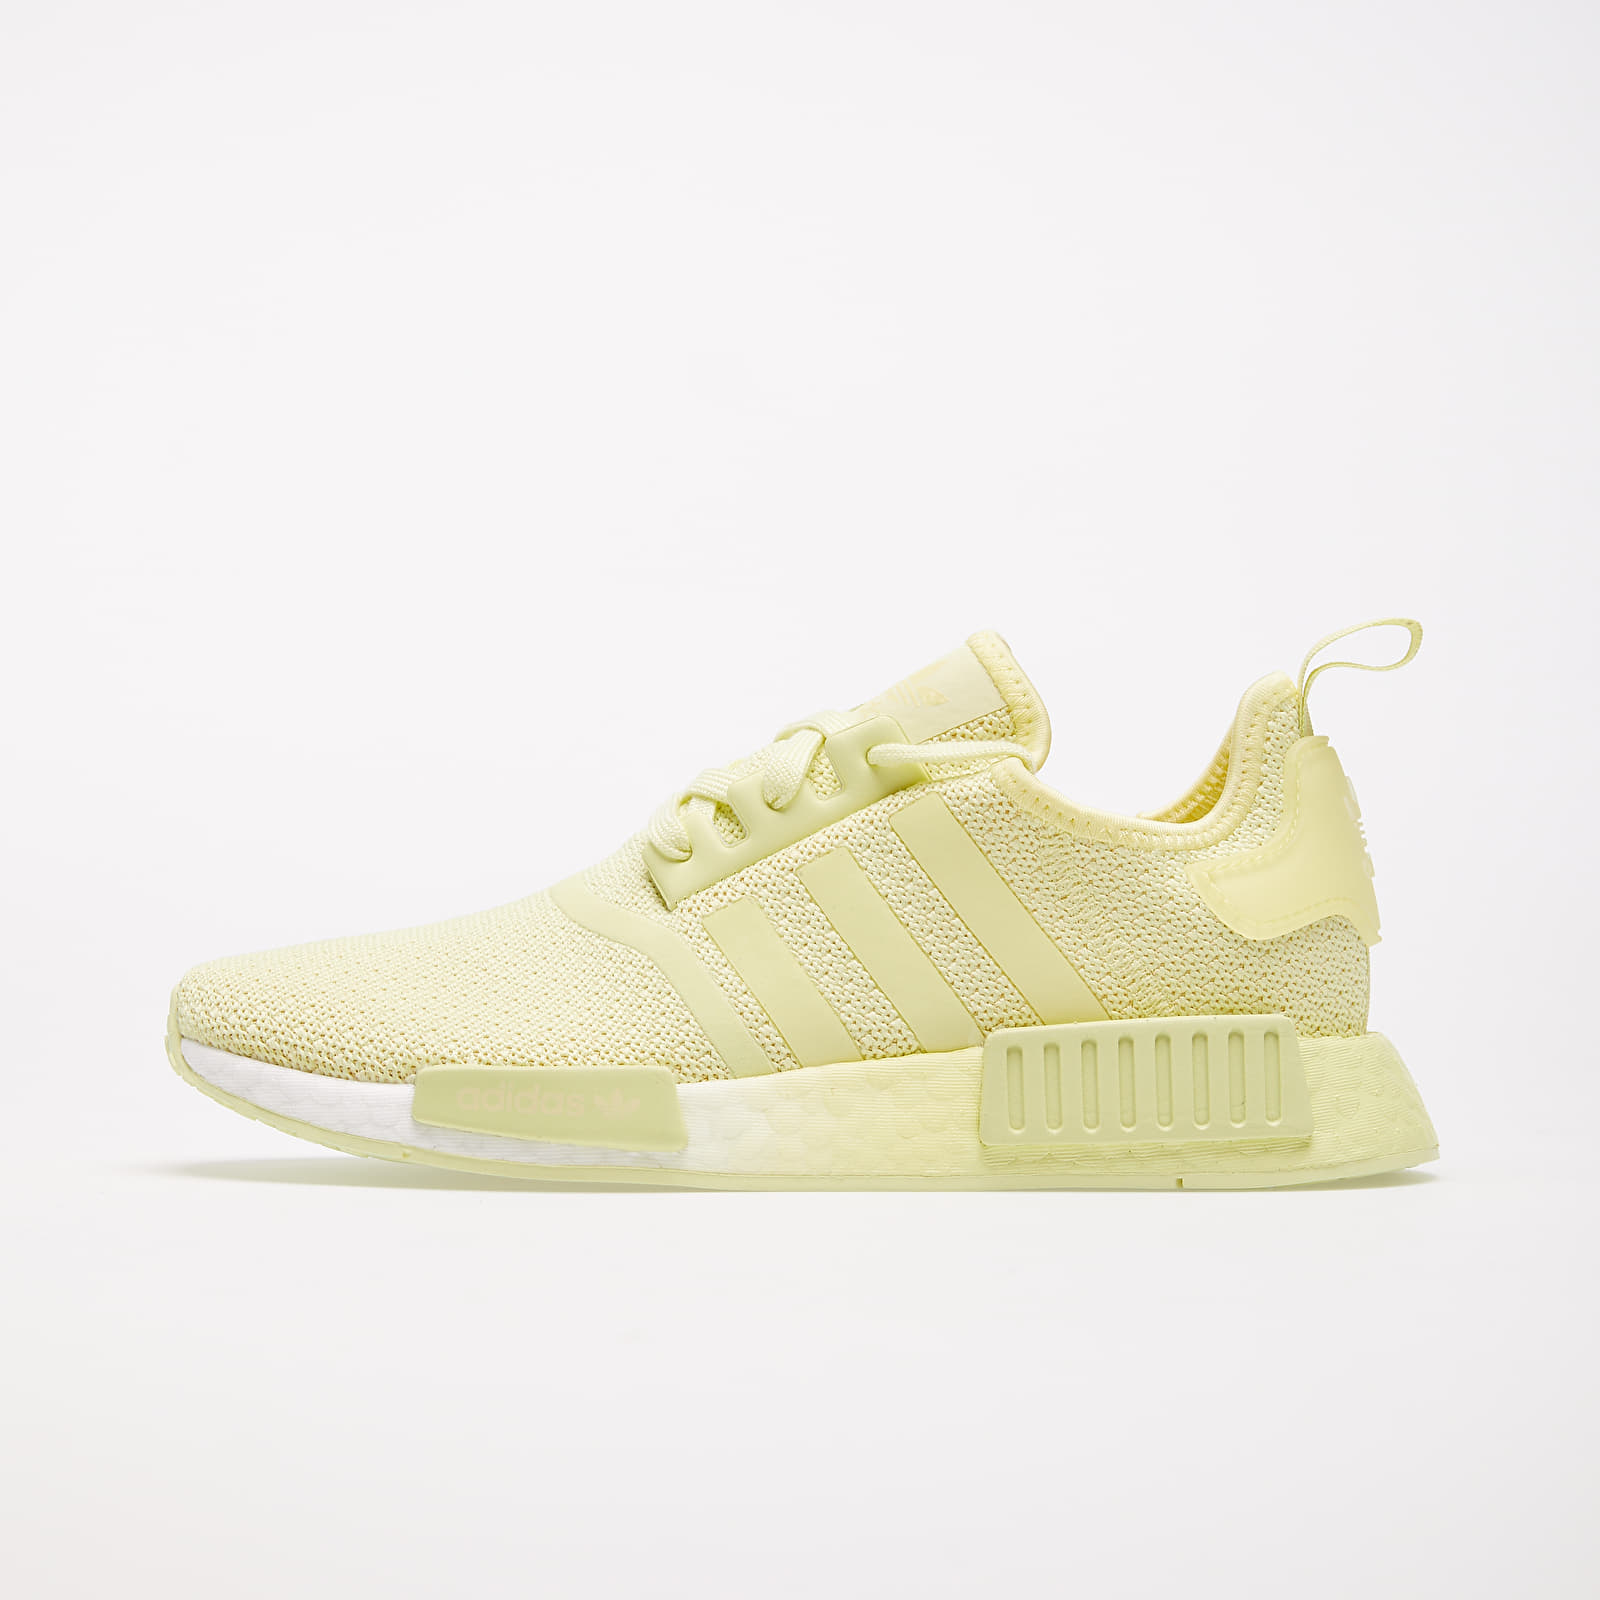 Women's shoes adidas NMD_R1 W Yellow Tint/ Yellow Tint/ Ftw White